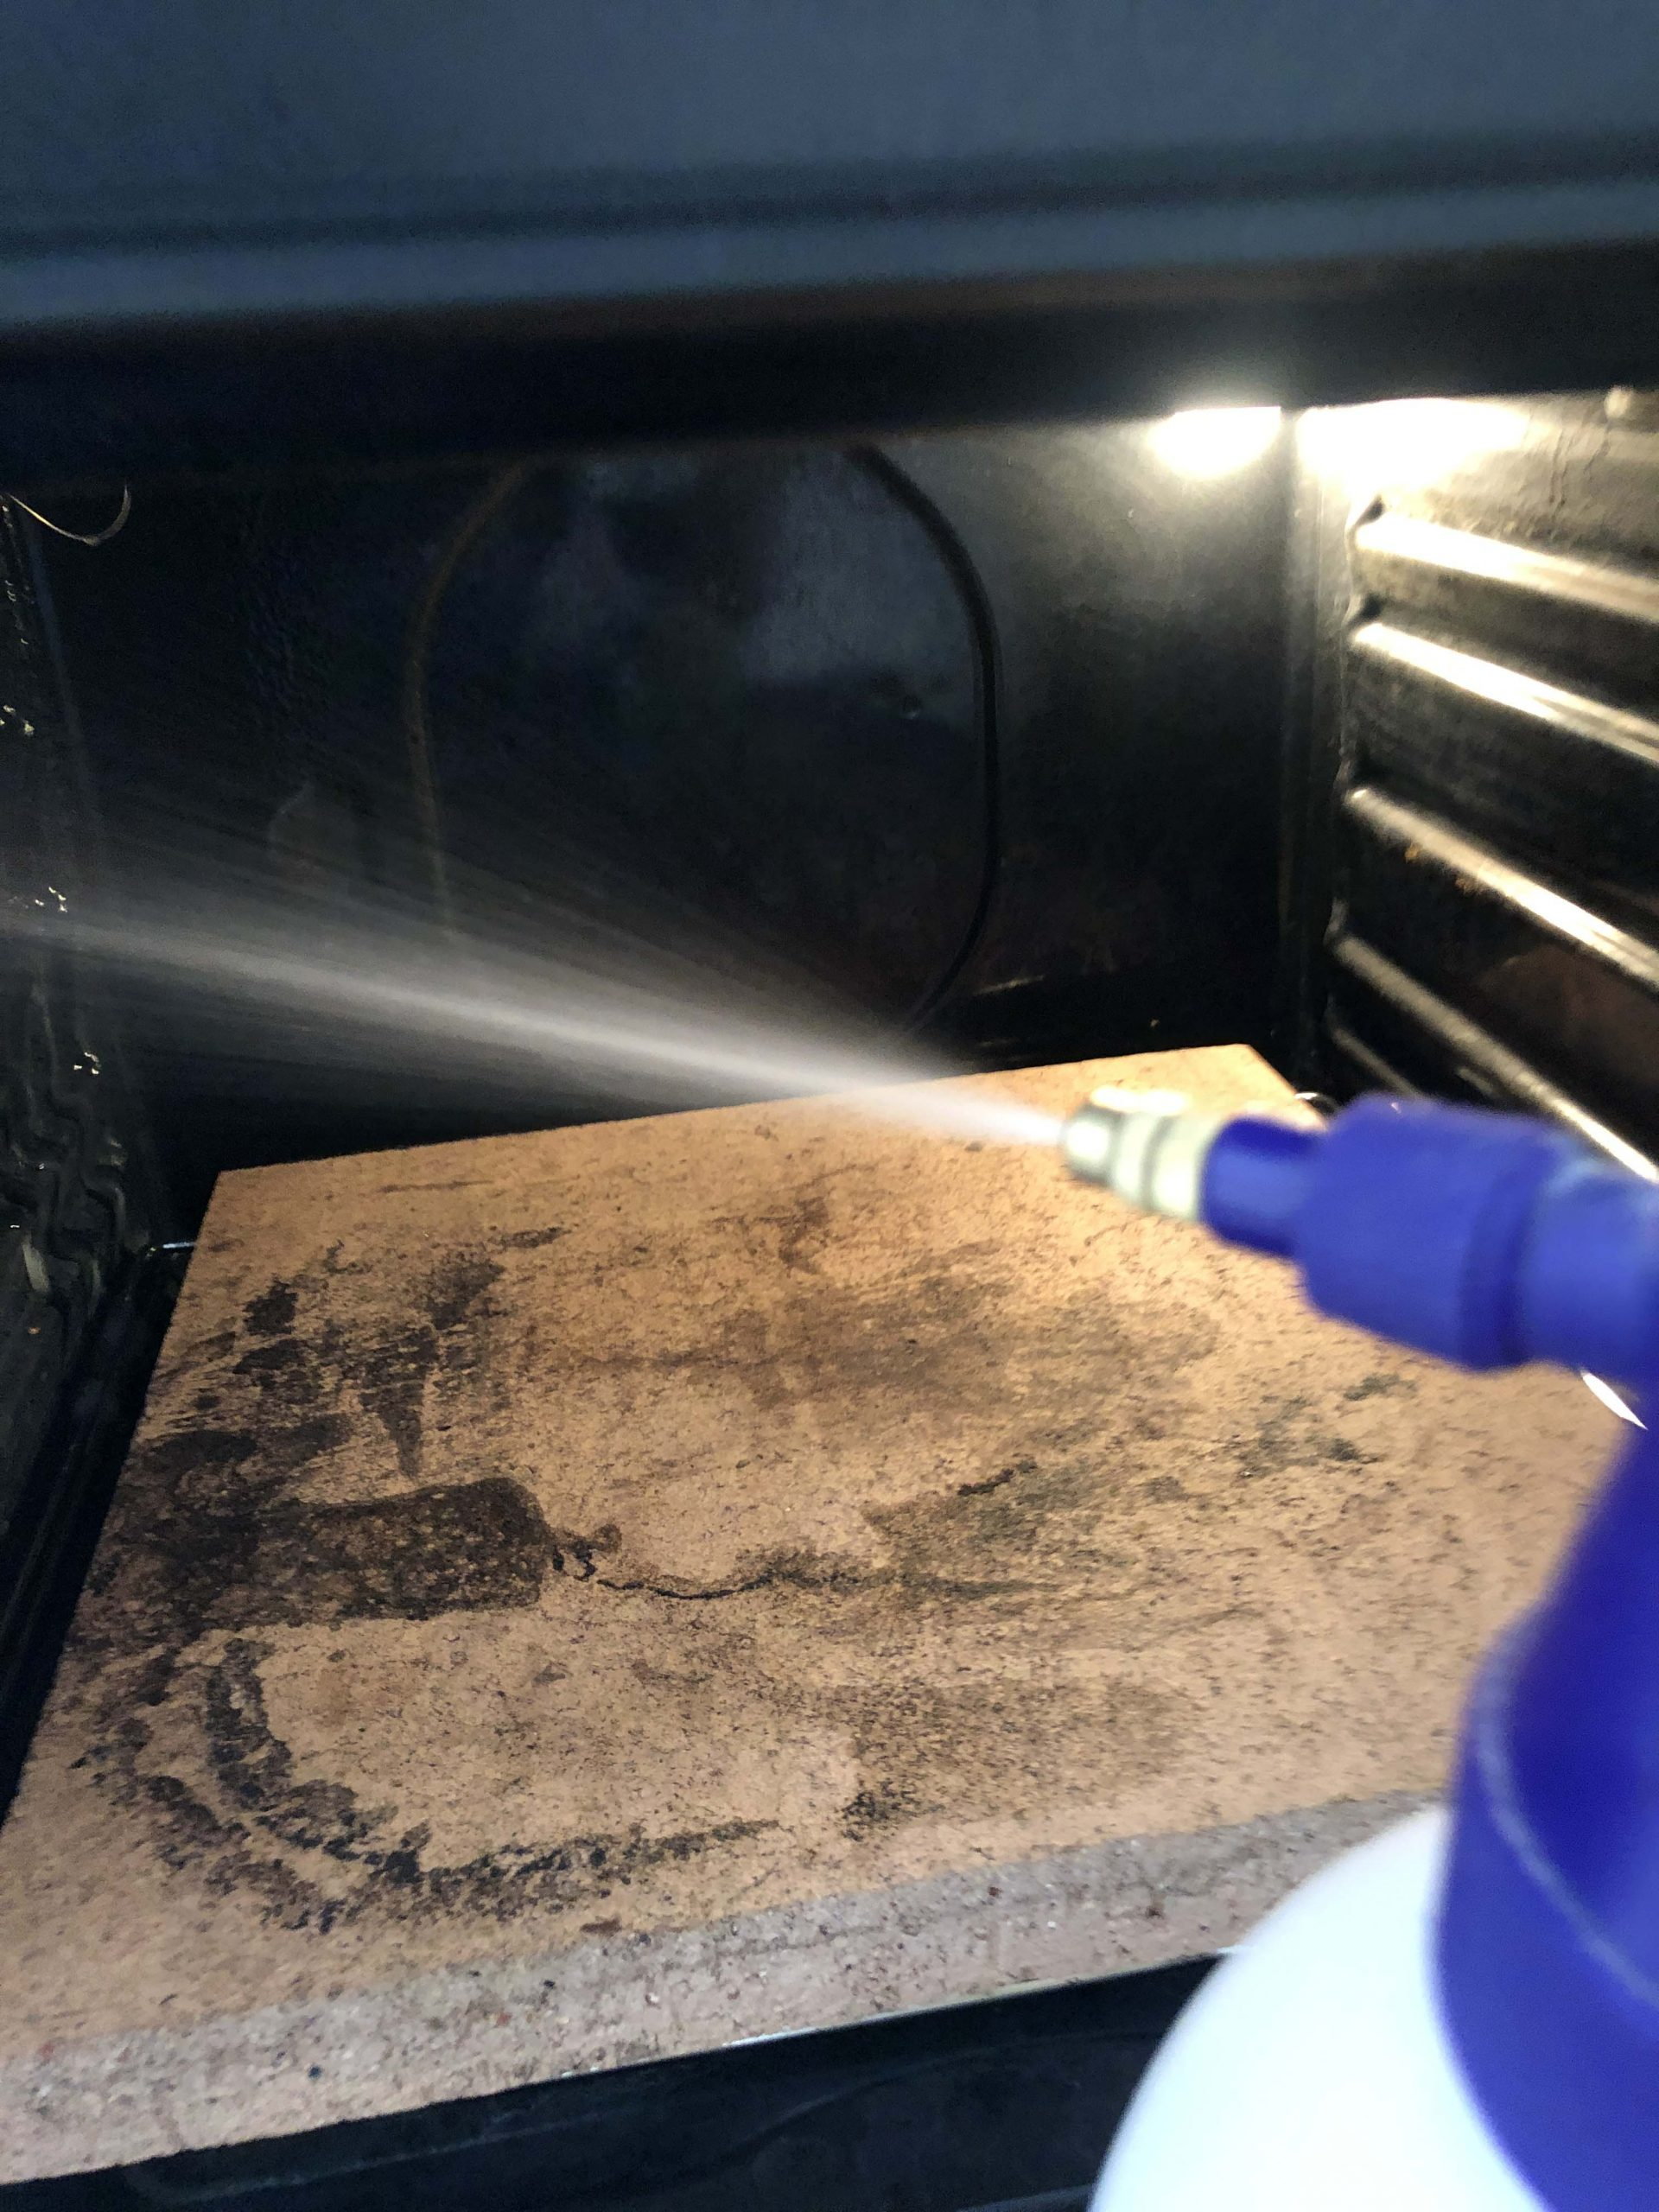 spraying the oven with a water mister